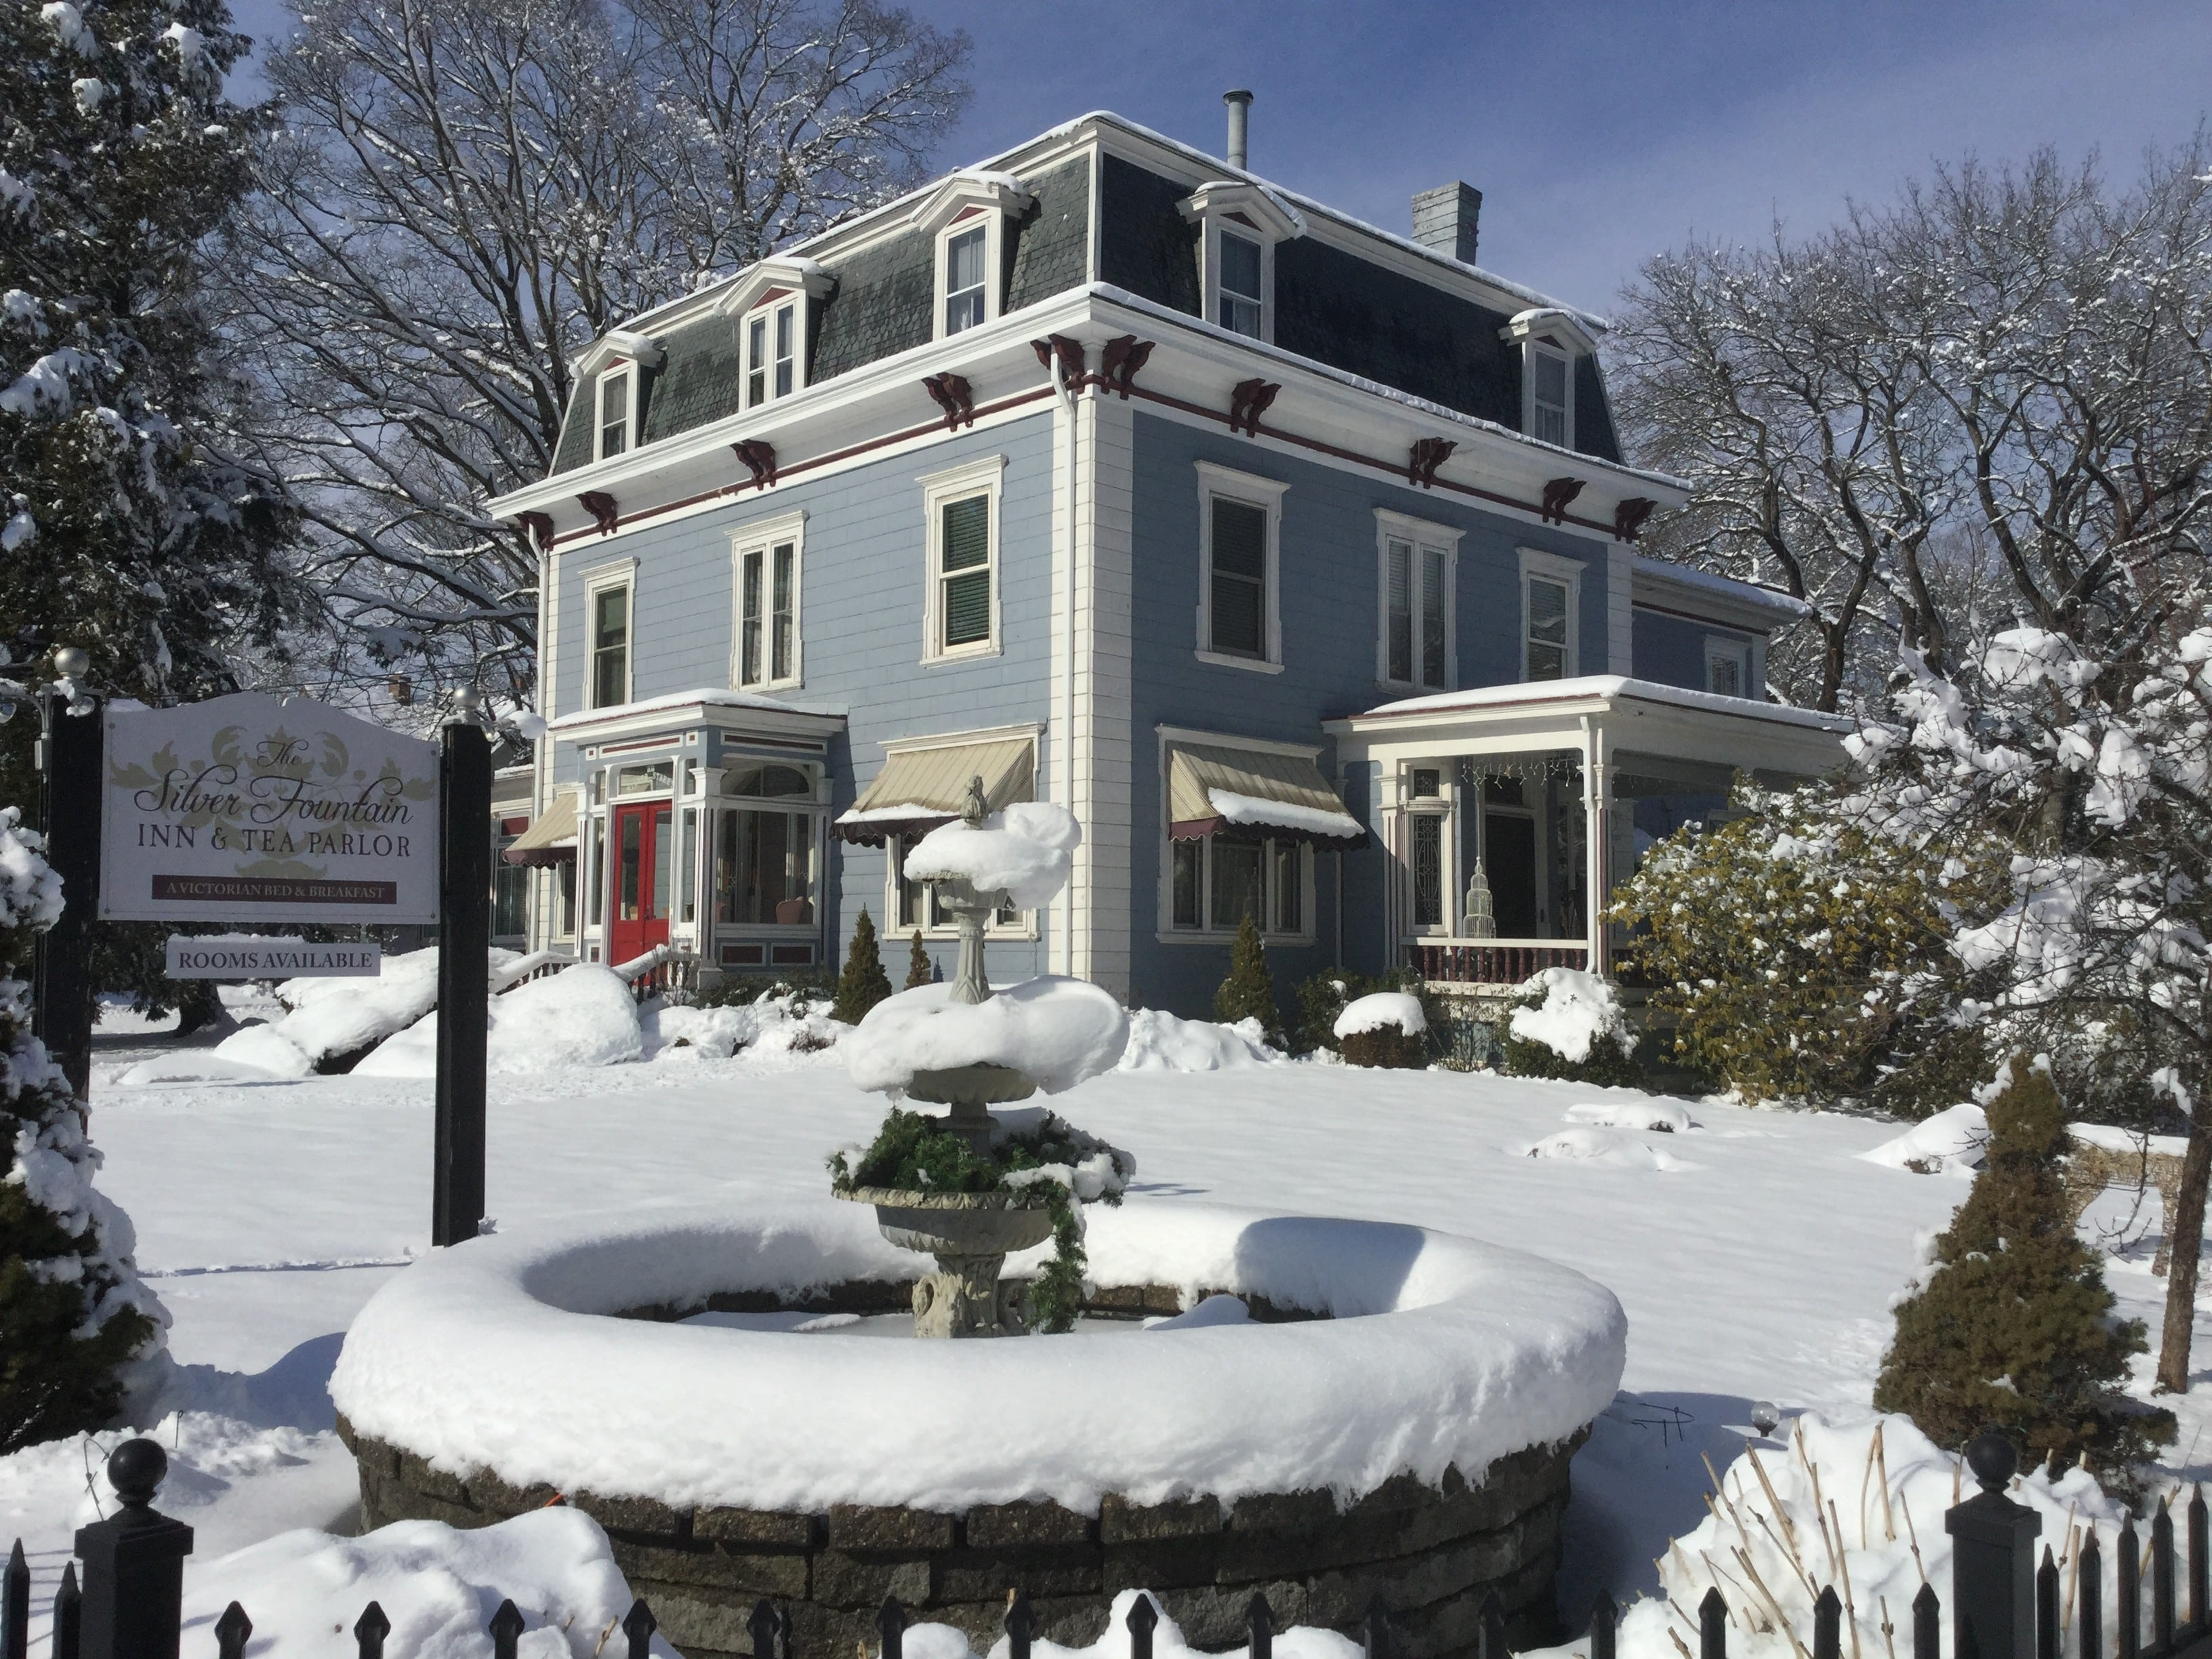 Wintertime view of our hotel seacoast nh. This is from the side of the inn, showing a snow covered water fountain and the sign for Silver Fountain Inn & tea parlor.